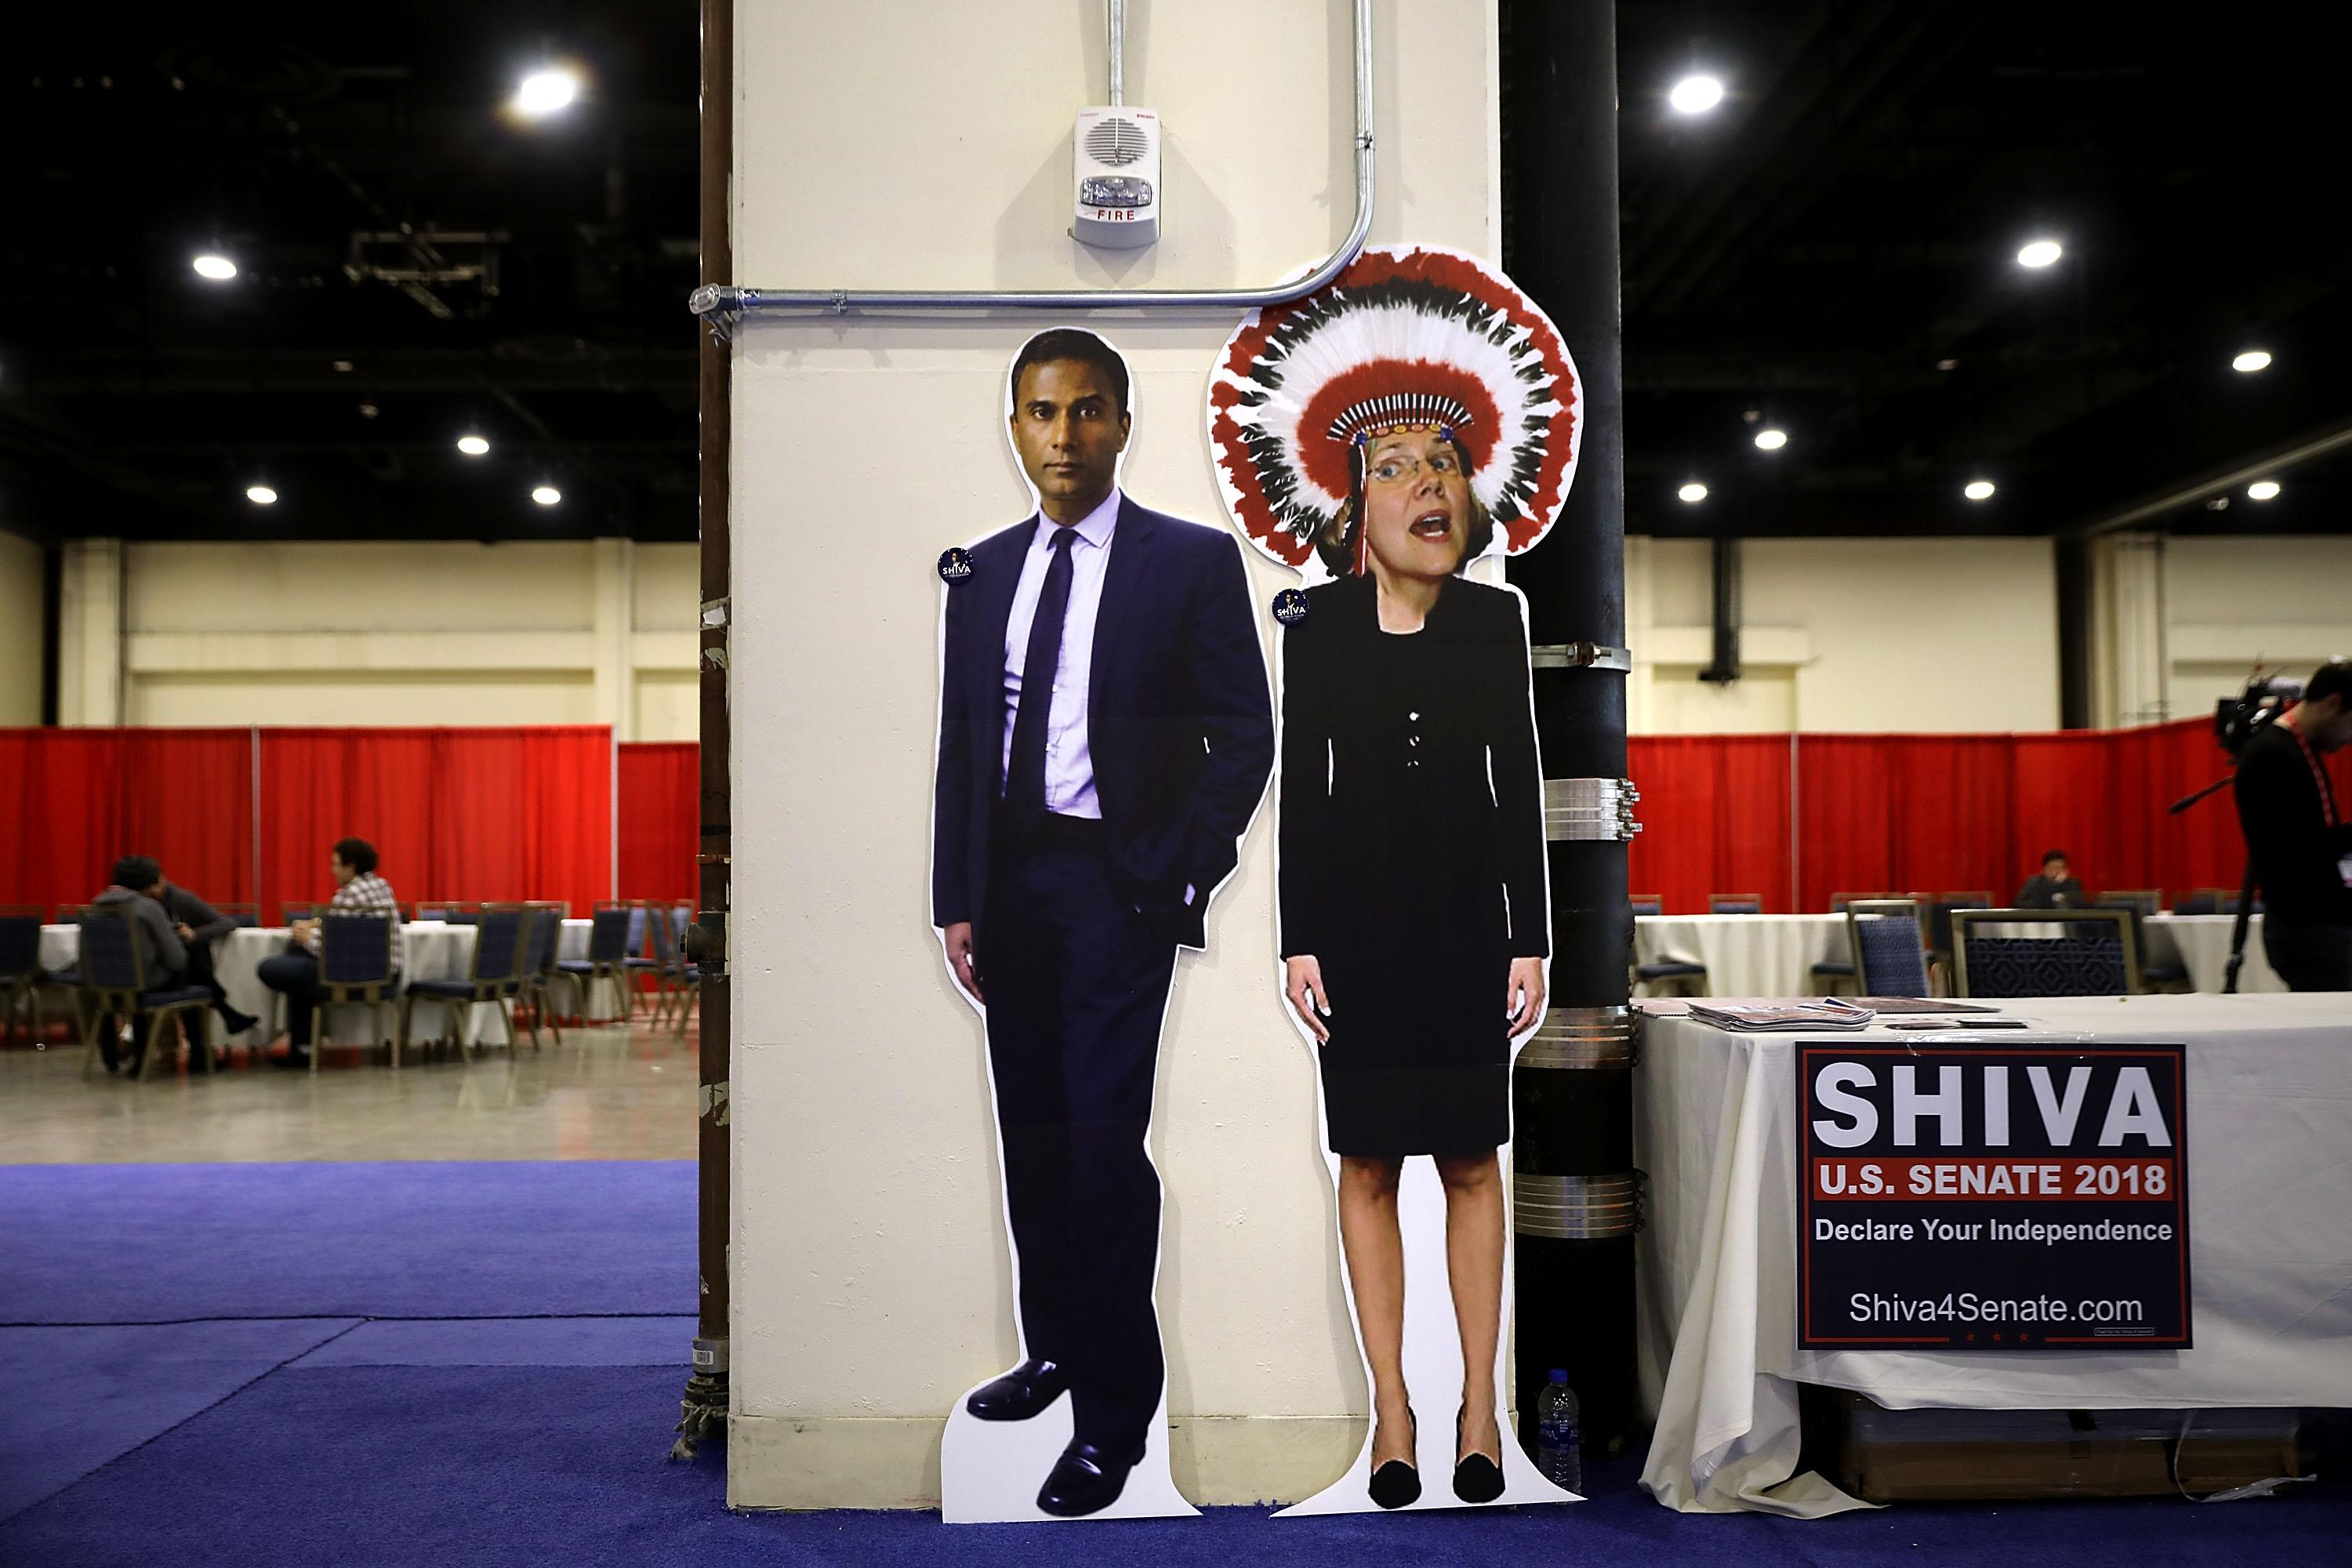 A booth in support of Shiva Ayyadurai, who is running against Sen. Elizabeth Warren (D-MA), displays a photoshopped image of Warren wearing a Native American headdress inside the Conservative Political Action Conference on February 23, 2018 in National Harbor, Maryland.